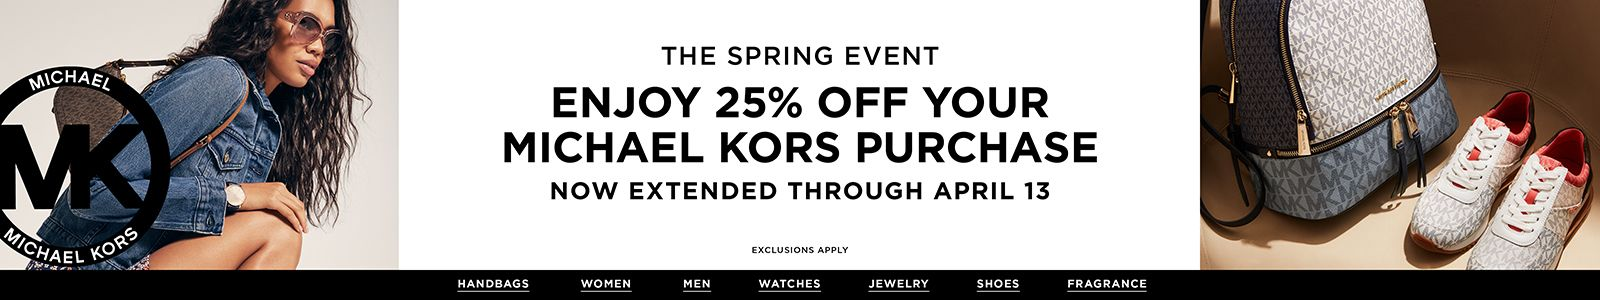 The Spring Event, Enjoy 25% Off Your Michael Kors Purchase, Now Extended Through April 13, Exclusions Apply, Handbags, Women, Men, Watches, Jewelry, Shoes, Fragrance